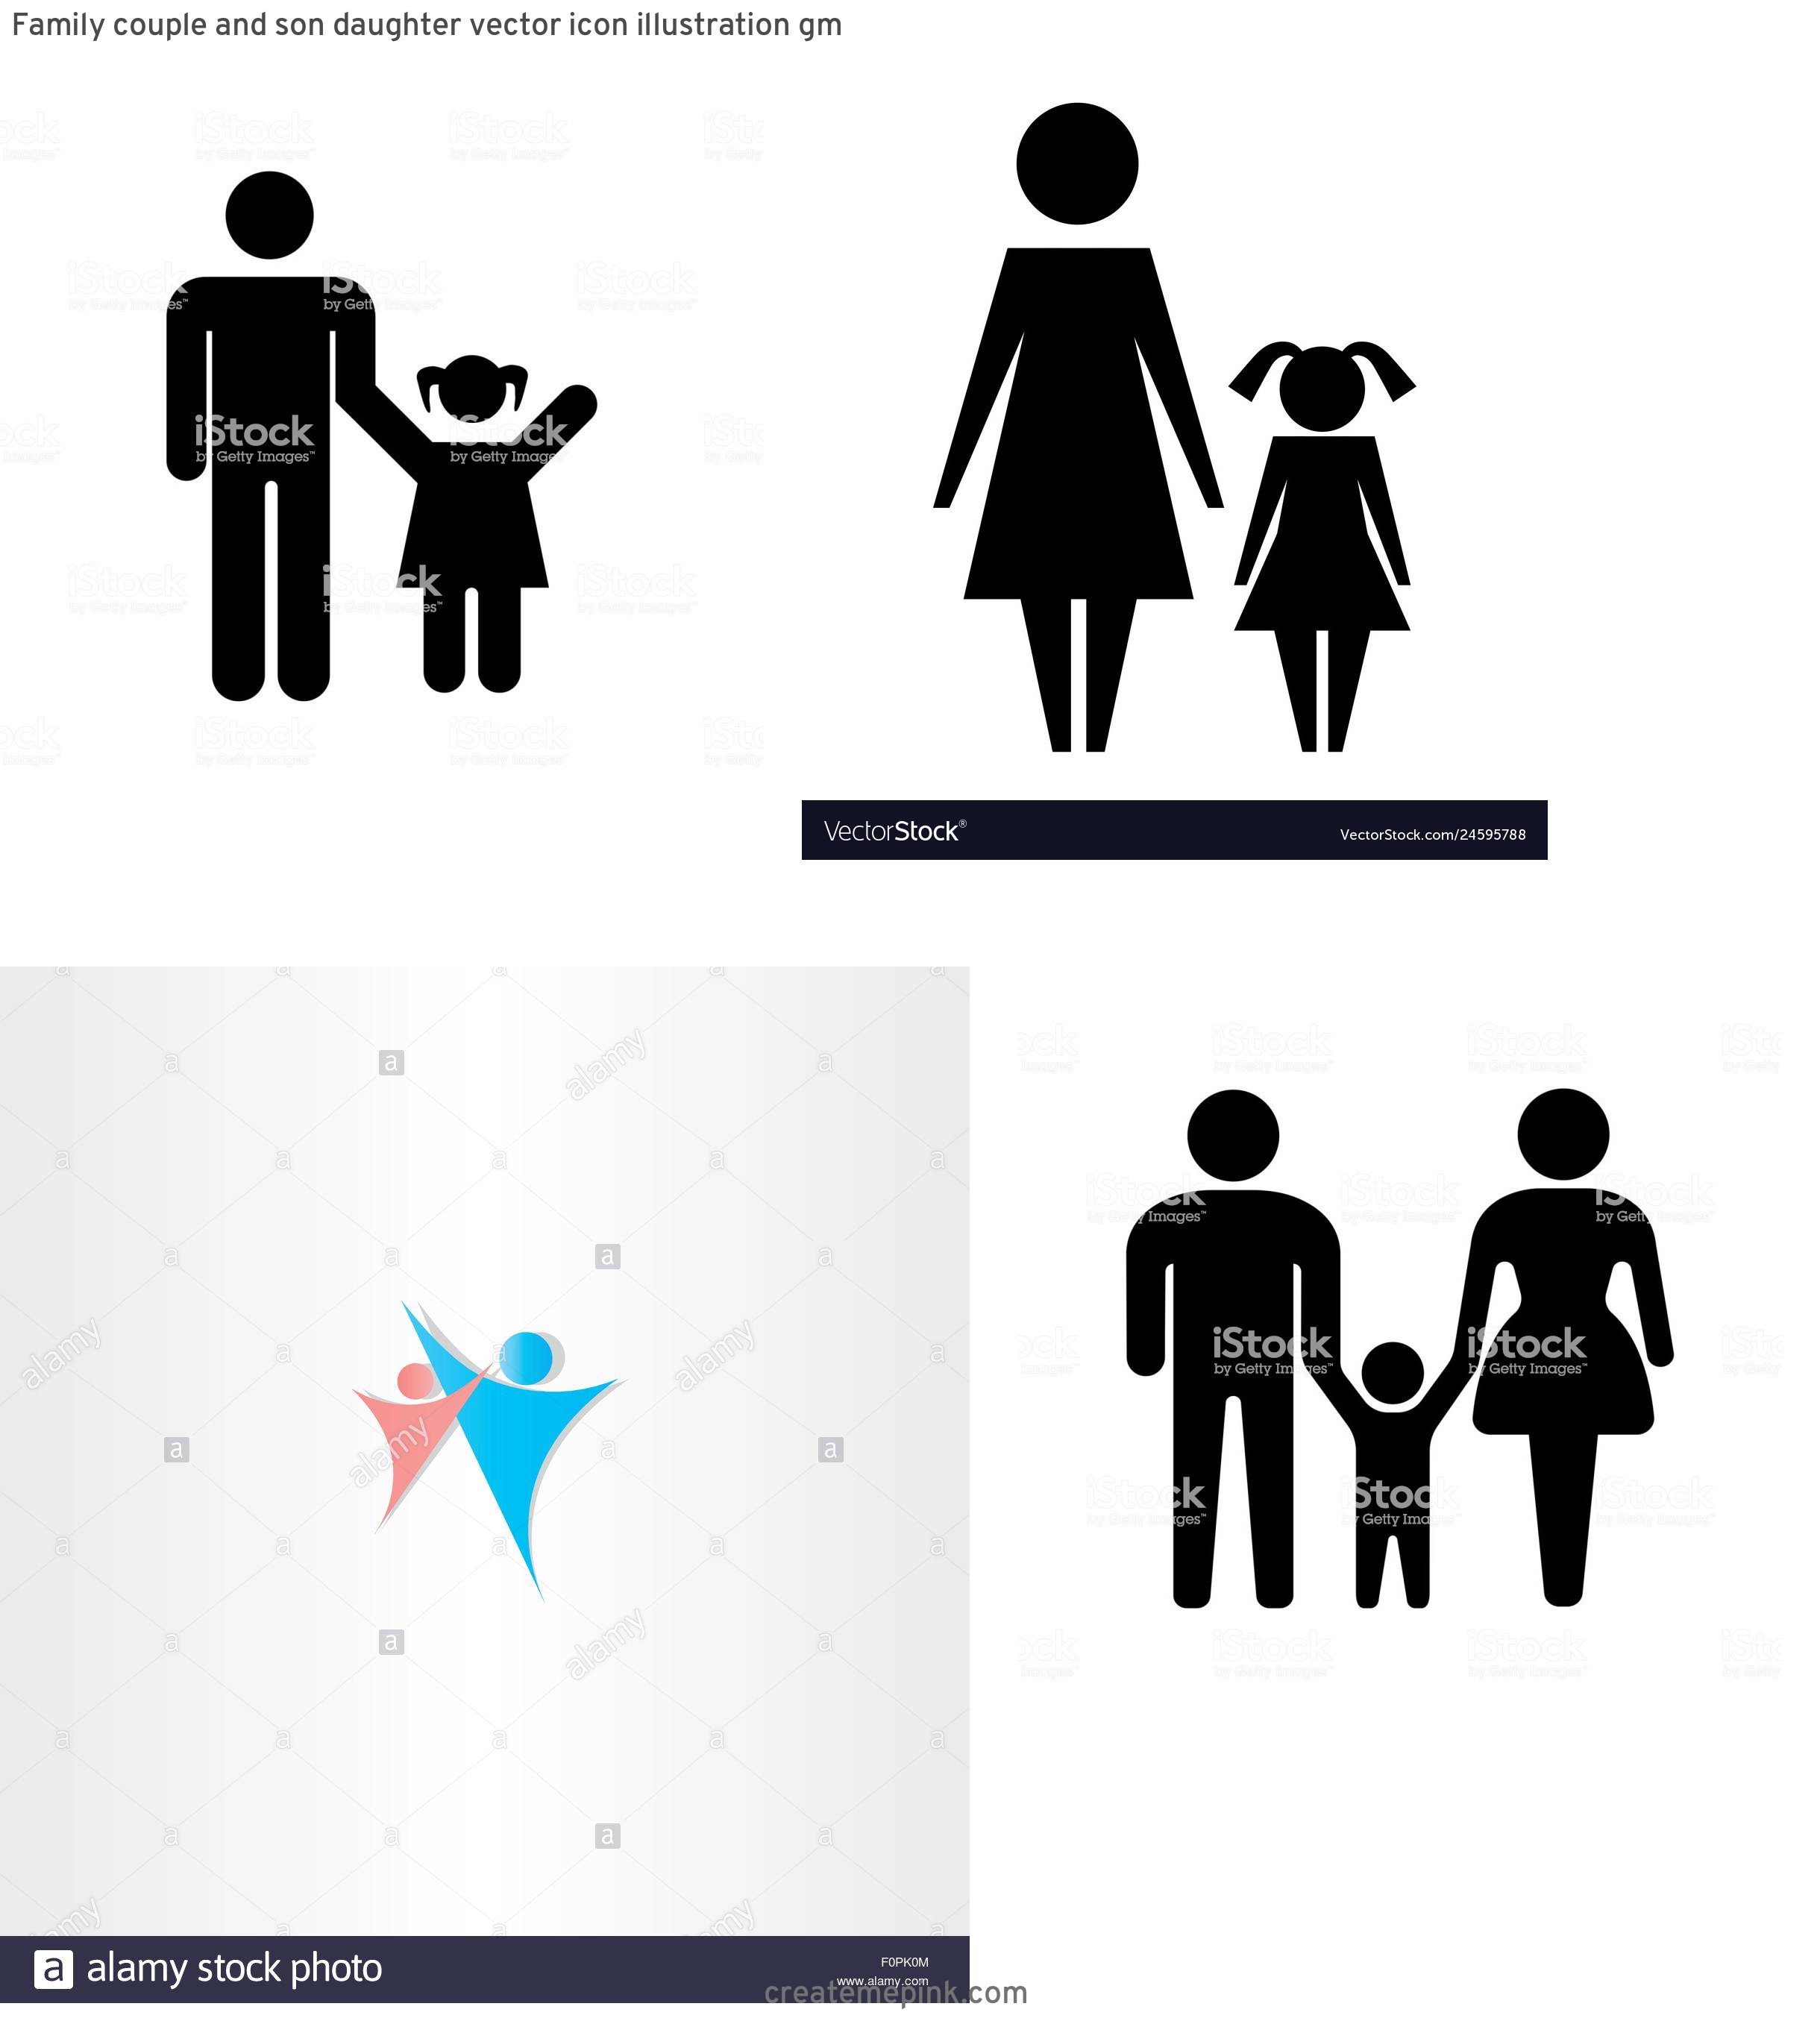 Daughter Vector Icons: Family Couple And Son Daughter Vector Icon Illustration Gm